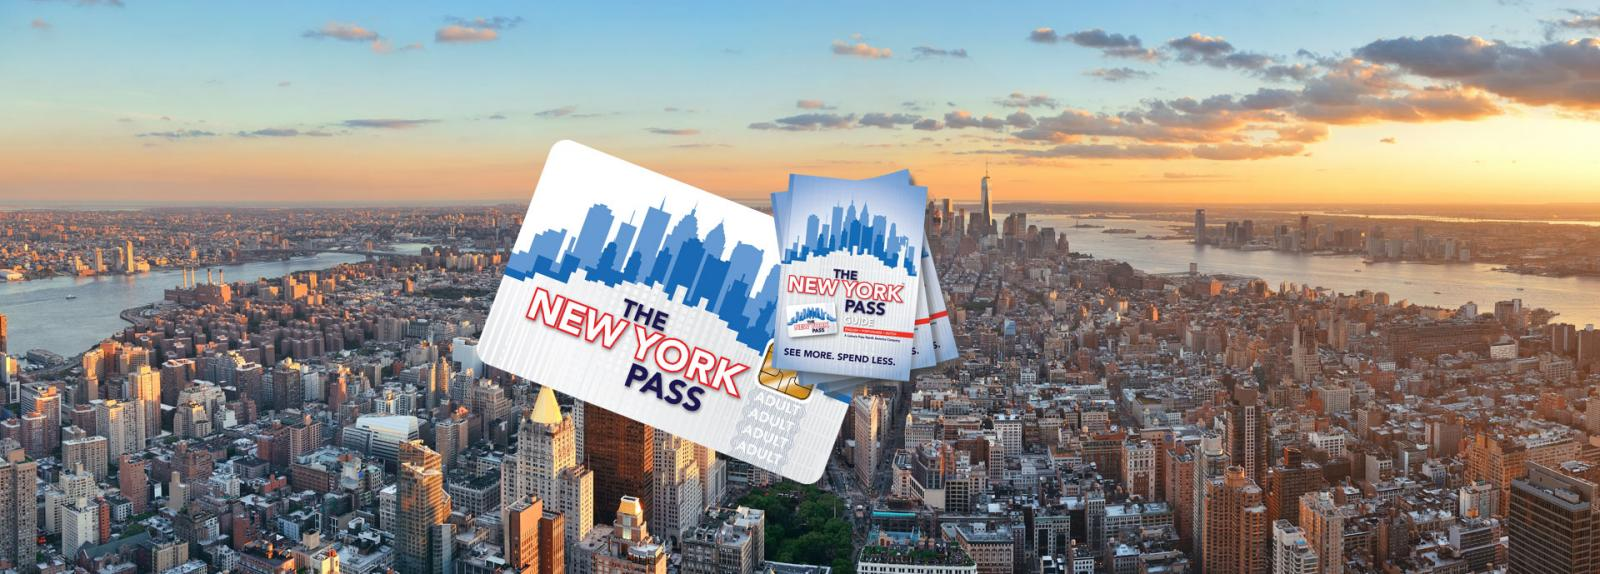 cheap helicopter ride nyc with New York Pass Promo Code on Hornblower New York Chinese New Years Eve Dinner Cruise besides New York Pass Adviser as well 1 dad finger t shirt 235657724826828773 further Urunlerimiz 170 Esinti D  S  Fotograflari additionally Thread 177518 1 1.